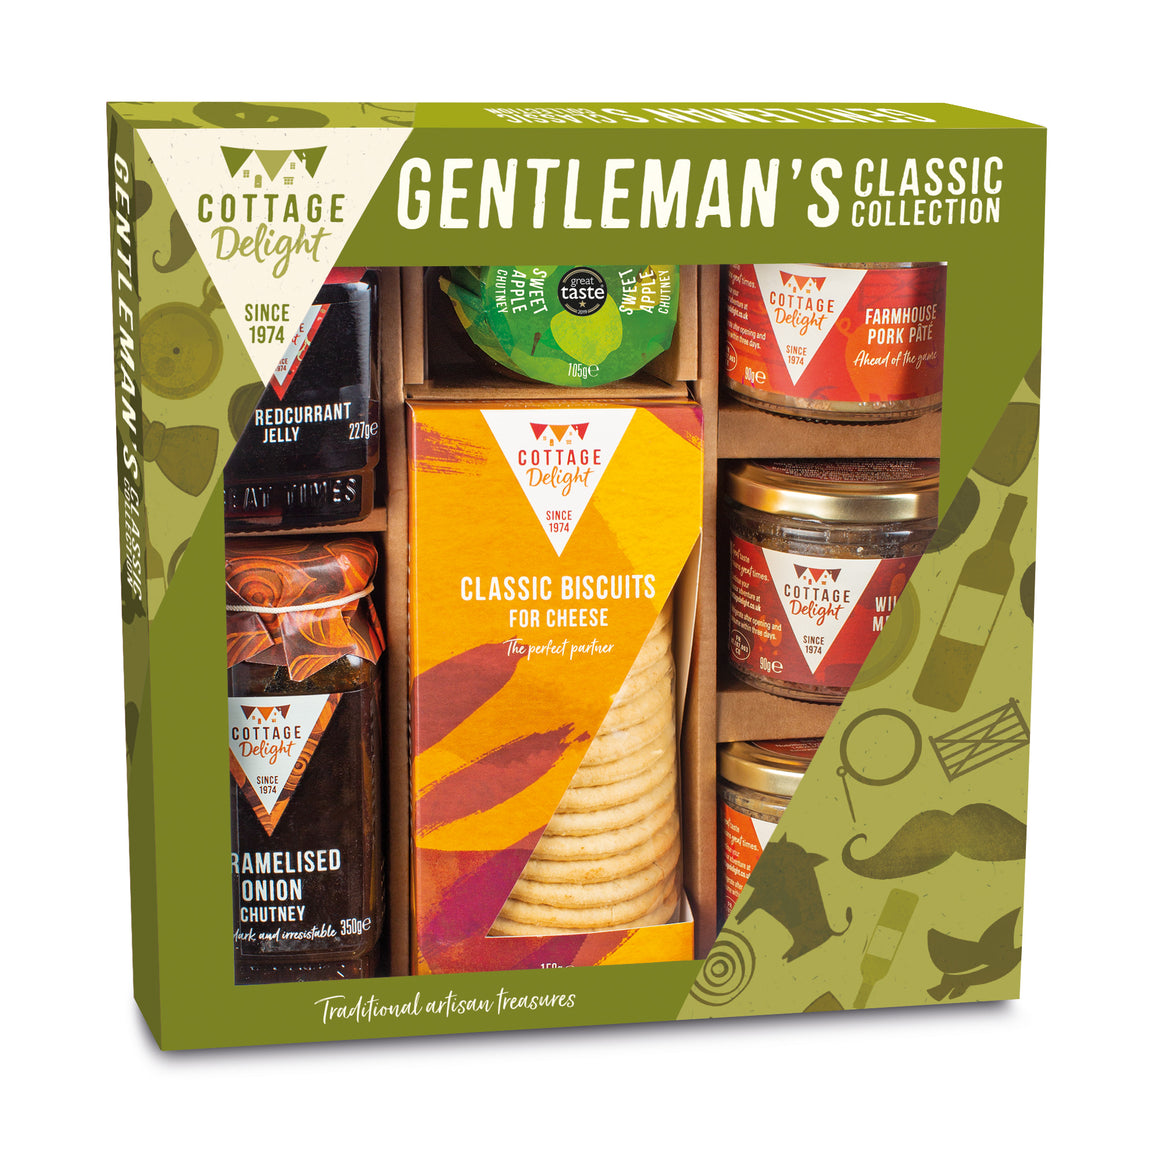 Cottage Delight Gentleman's Classic Collection